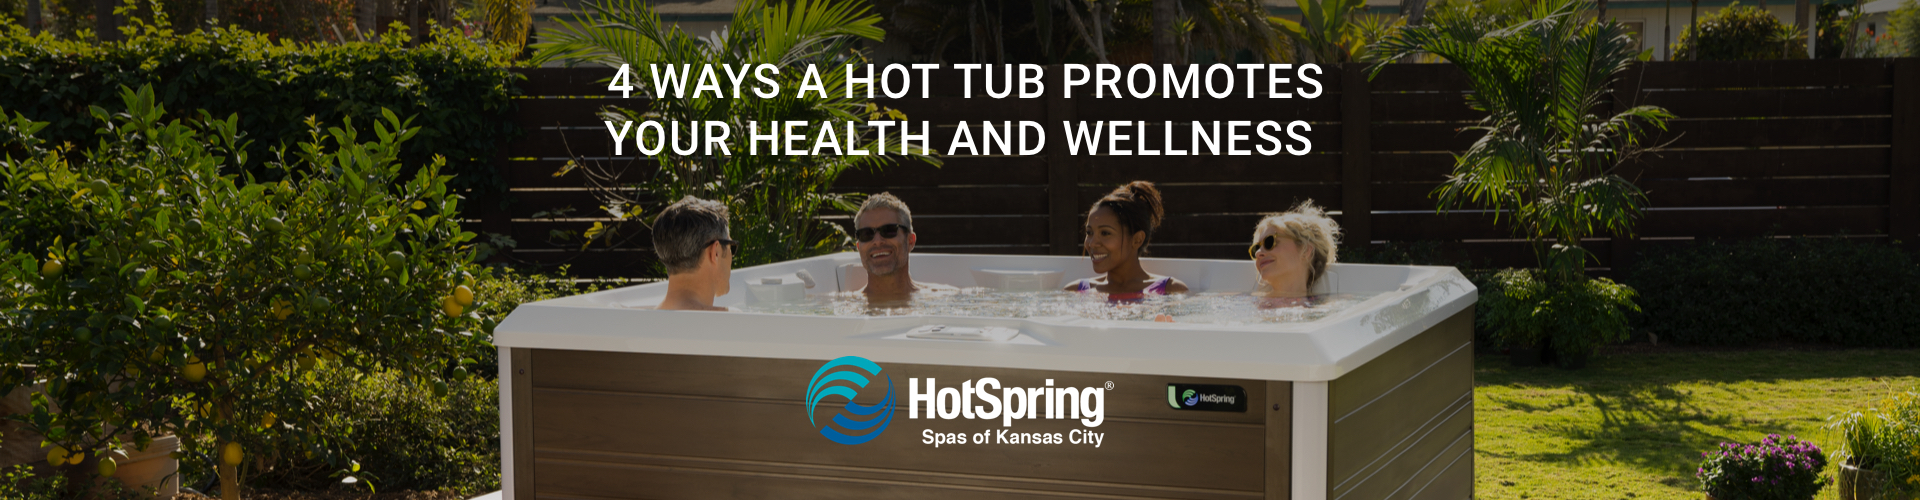 4 Ways a Hot Tub Promotes Your Health and Wellness